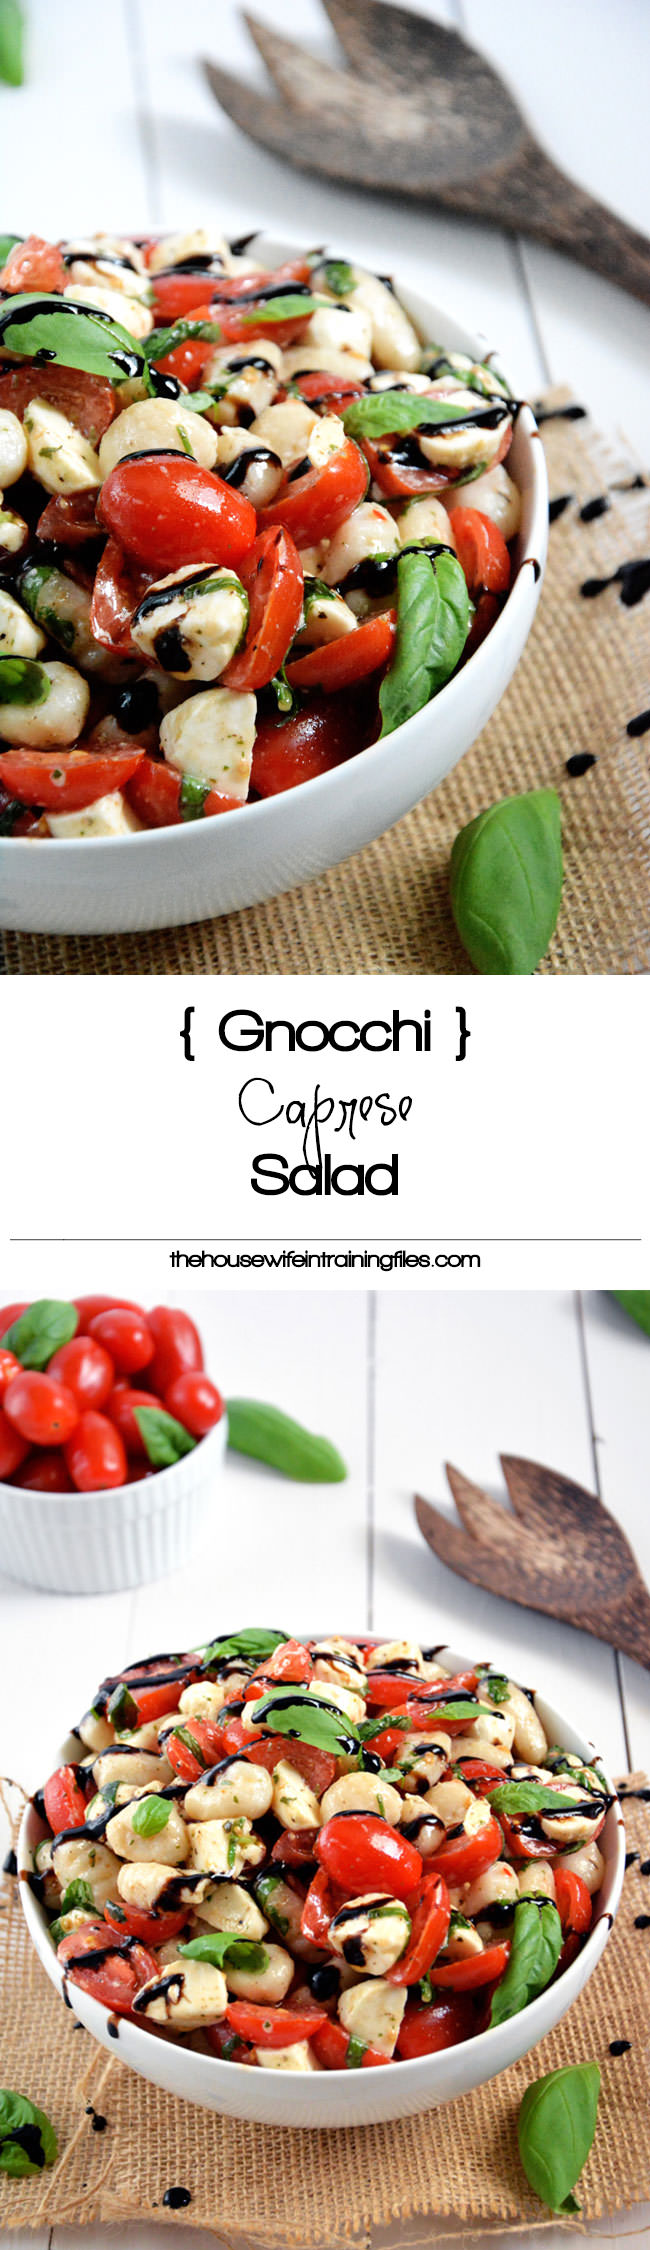 Caprese Salad gets made over and tossed with delicious gnocchi for an easy and wholesome, make ahead salad!